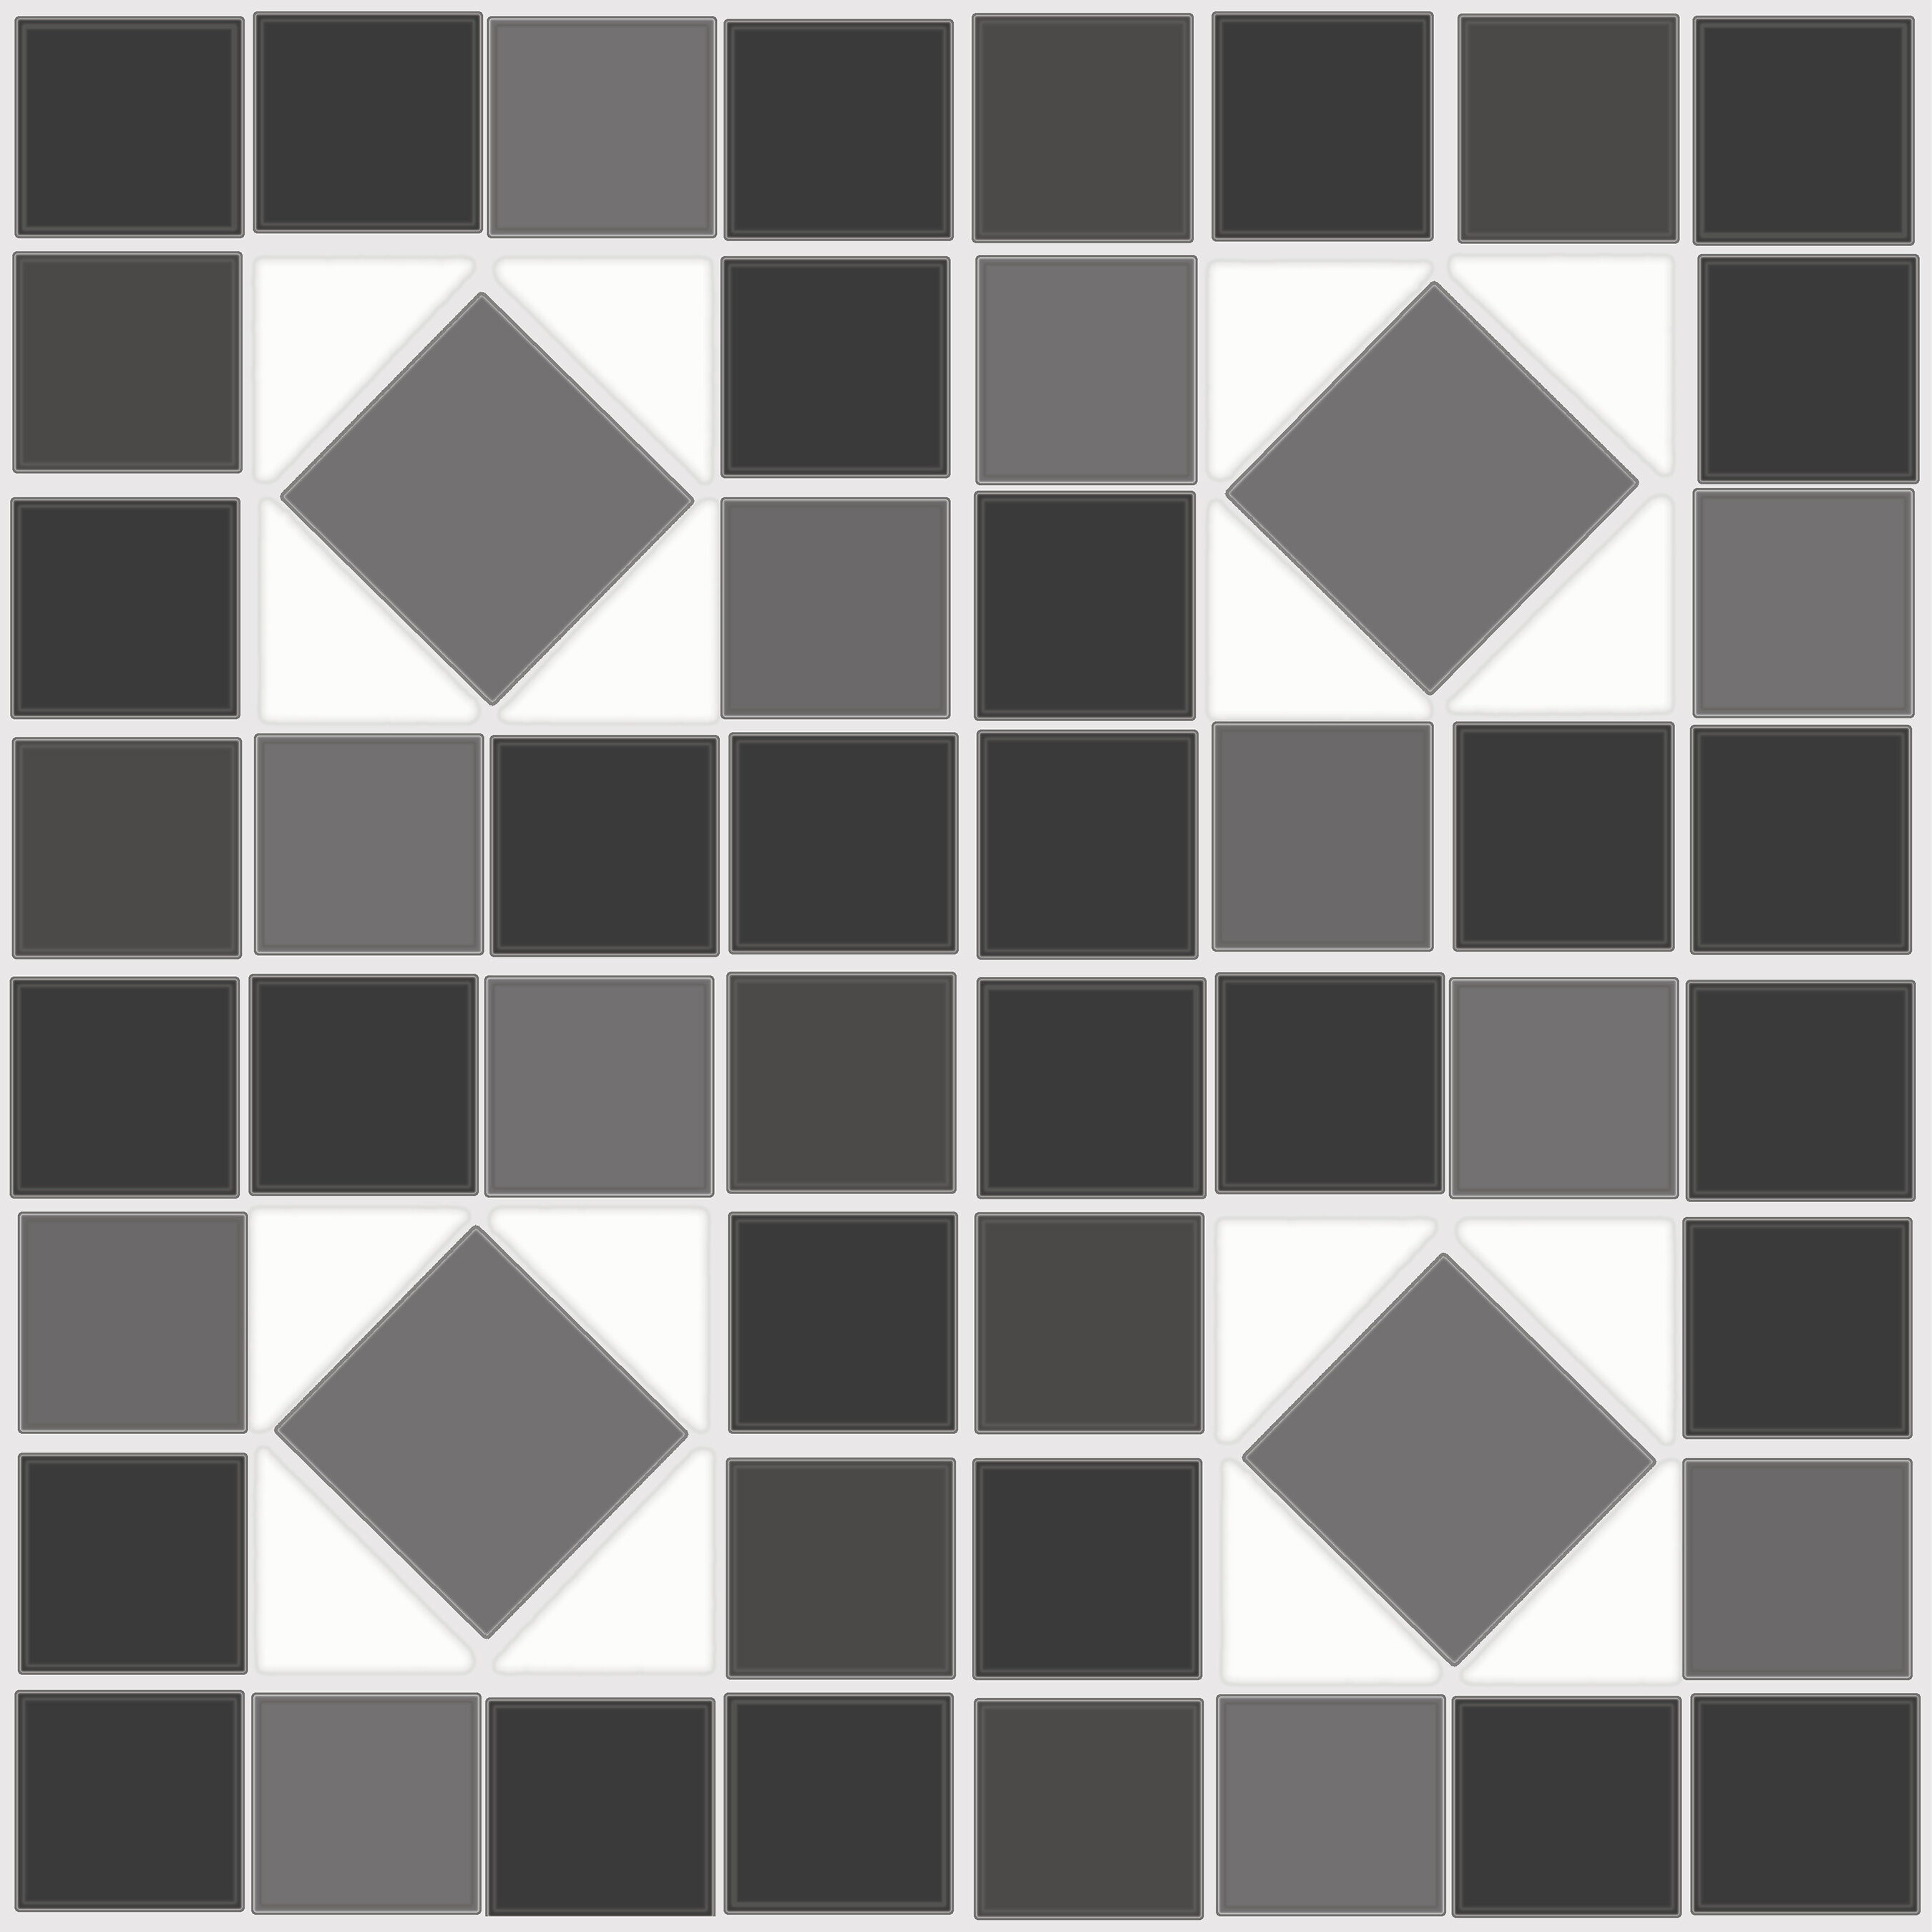 Floor Adorn By Con Tact Brand Self Adhesive Decorative And Removable 12 X 12 X 0 25mm Vinyl Tile Wayfair